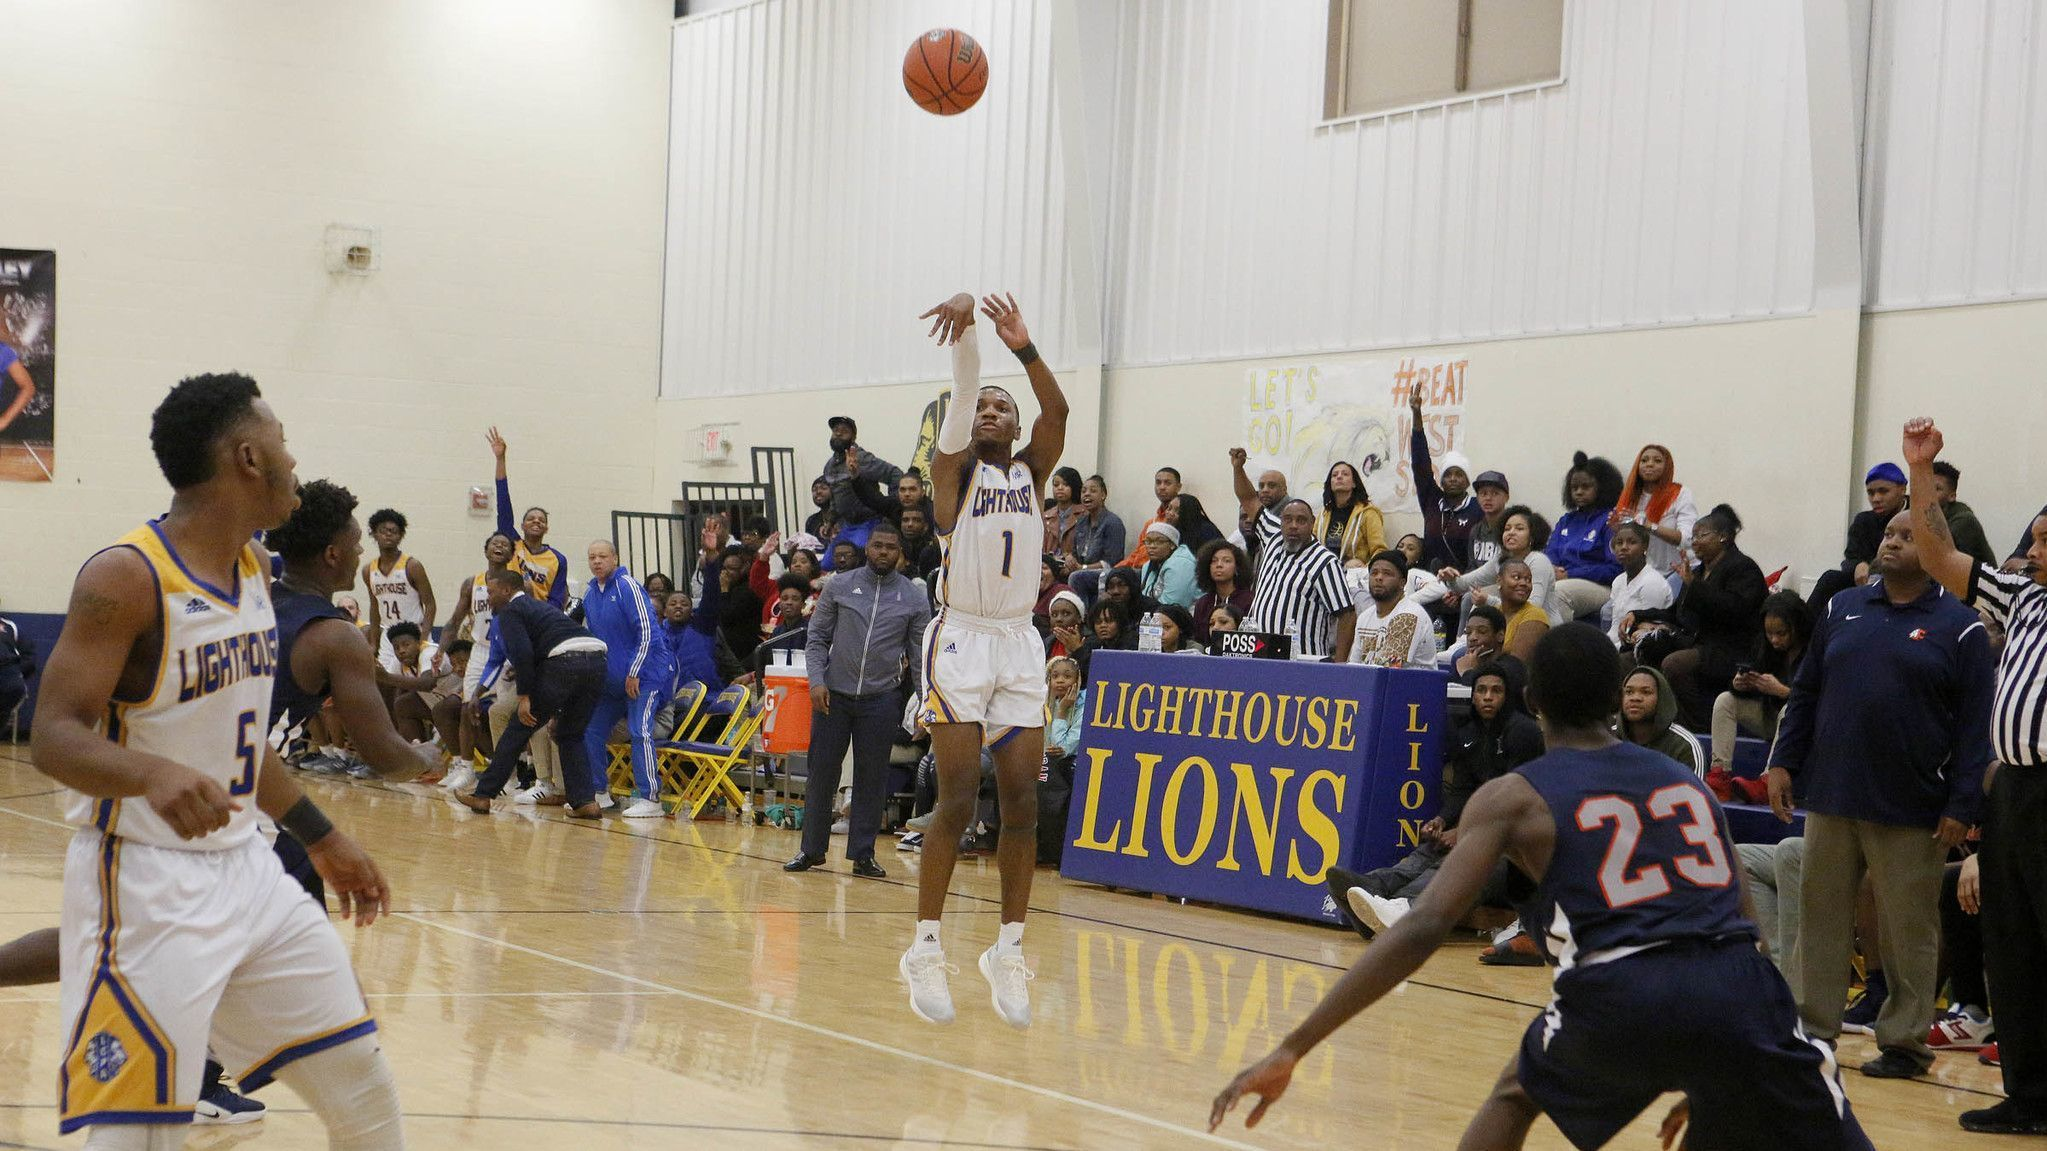 Mays' day: Senior guard Timothy Mays scores 21 points as Lighthouse 'hustles' past West Side